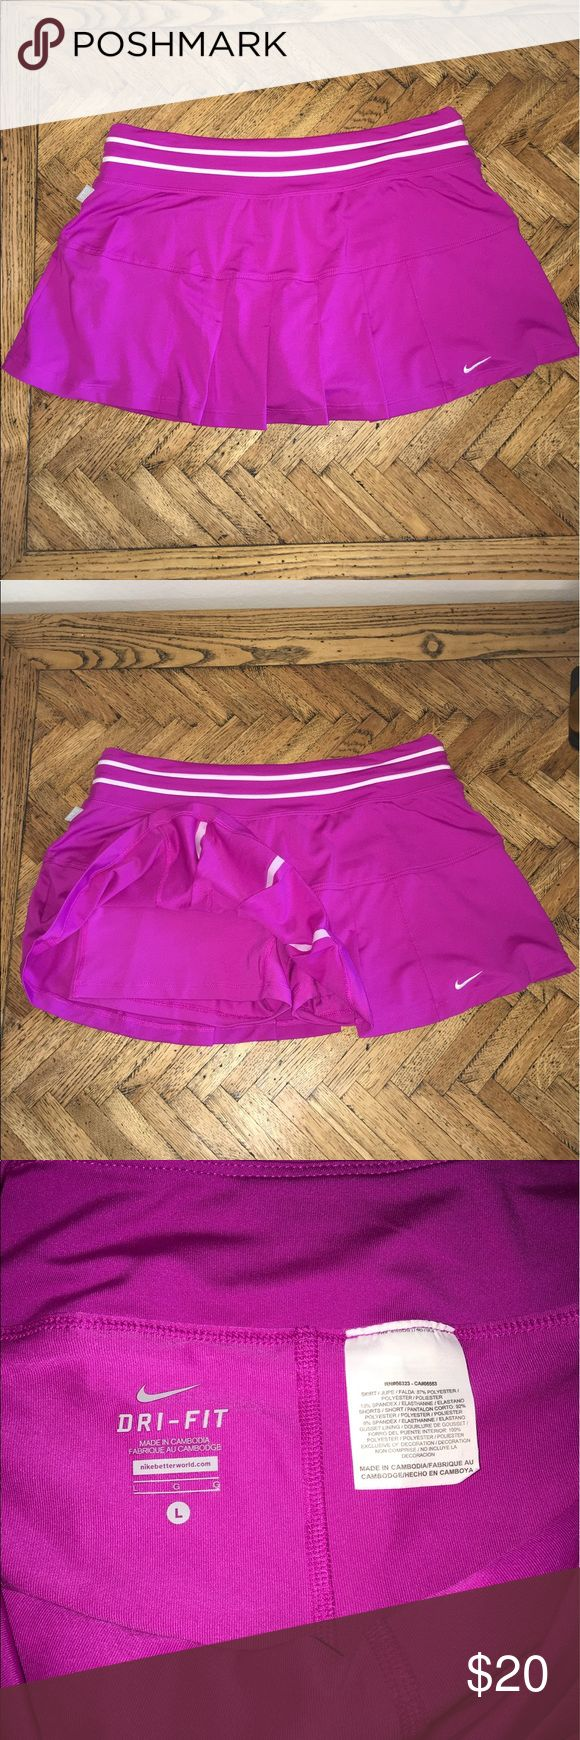 Nike Smash Classic Tennis Skirt Super cute fuchsia colored tennis skirt. It's may even be called since it has built in shorts underneath. It's in excellent condition, shows no sign of wear. Nike Skirts Mini